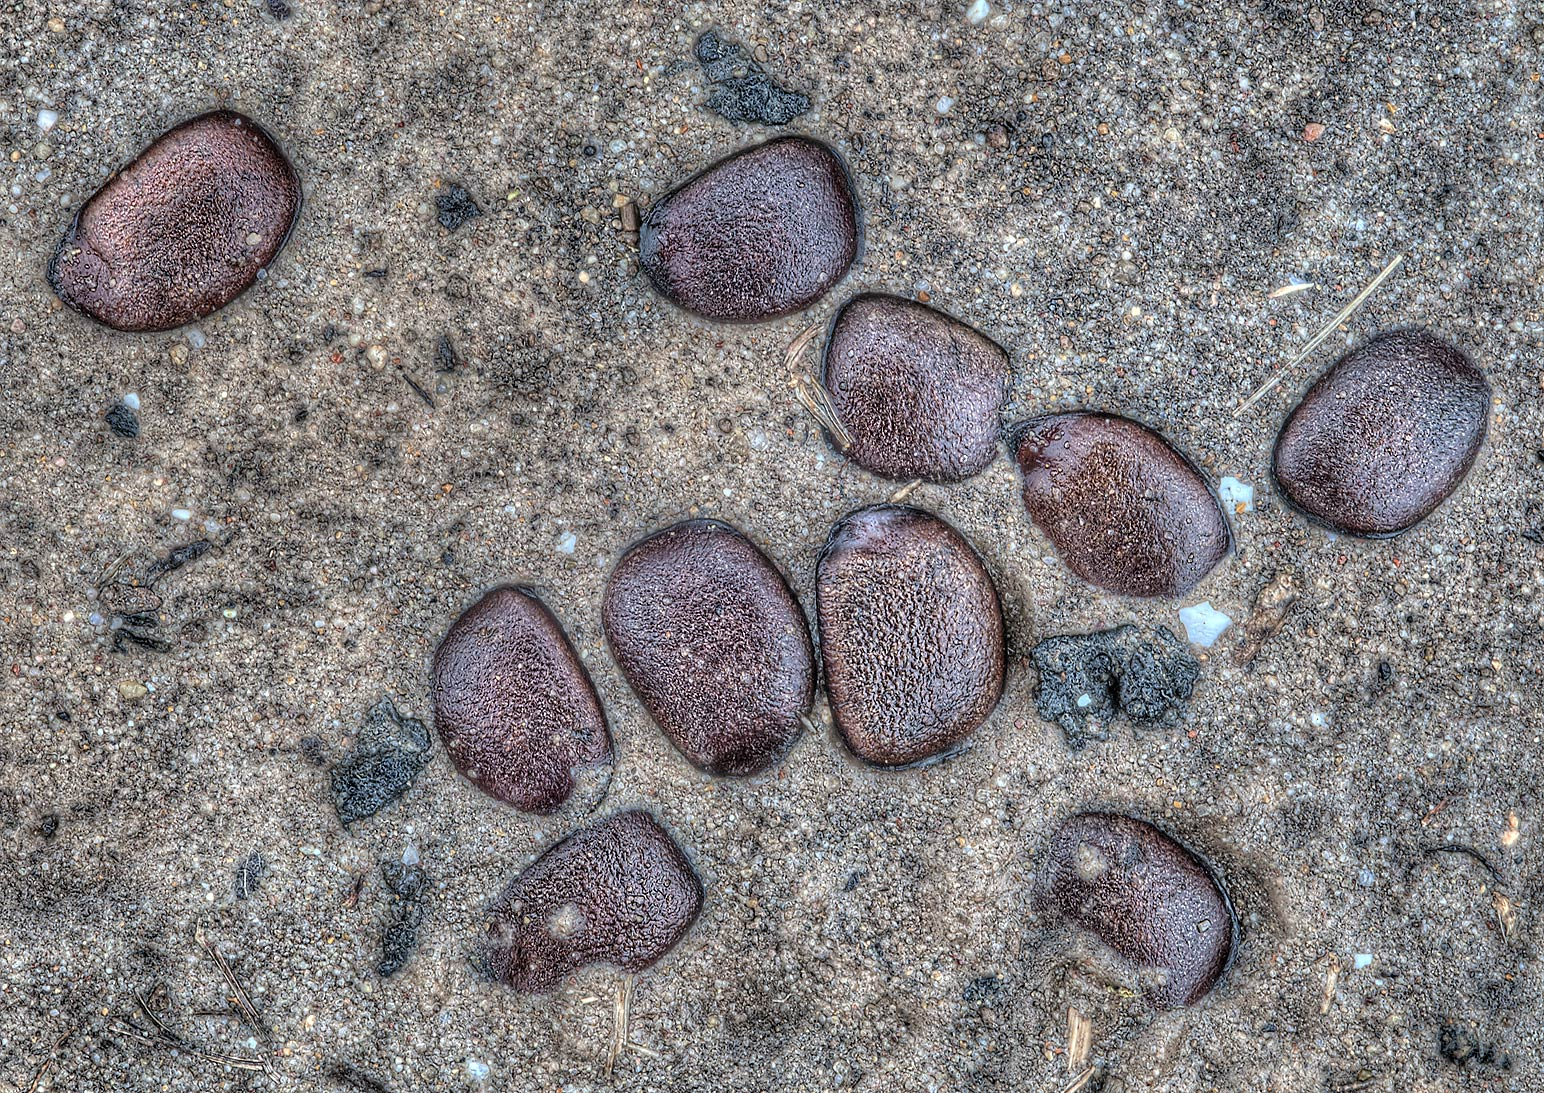 Persimmon seeds in animal droppings on a trail in...State Historic Site. Washington, Texas